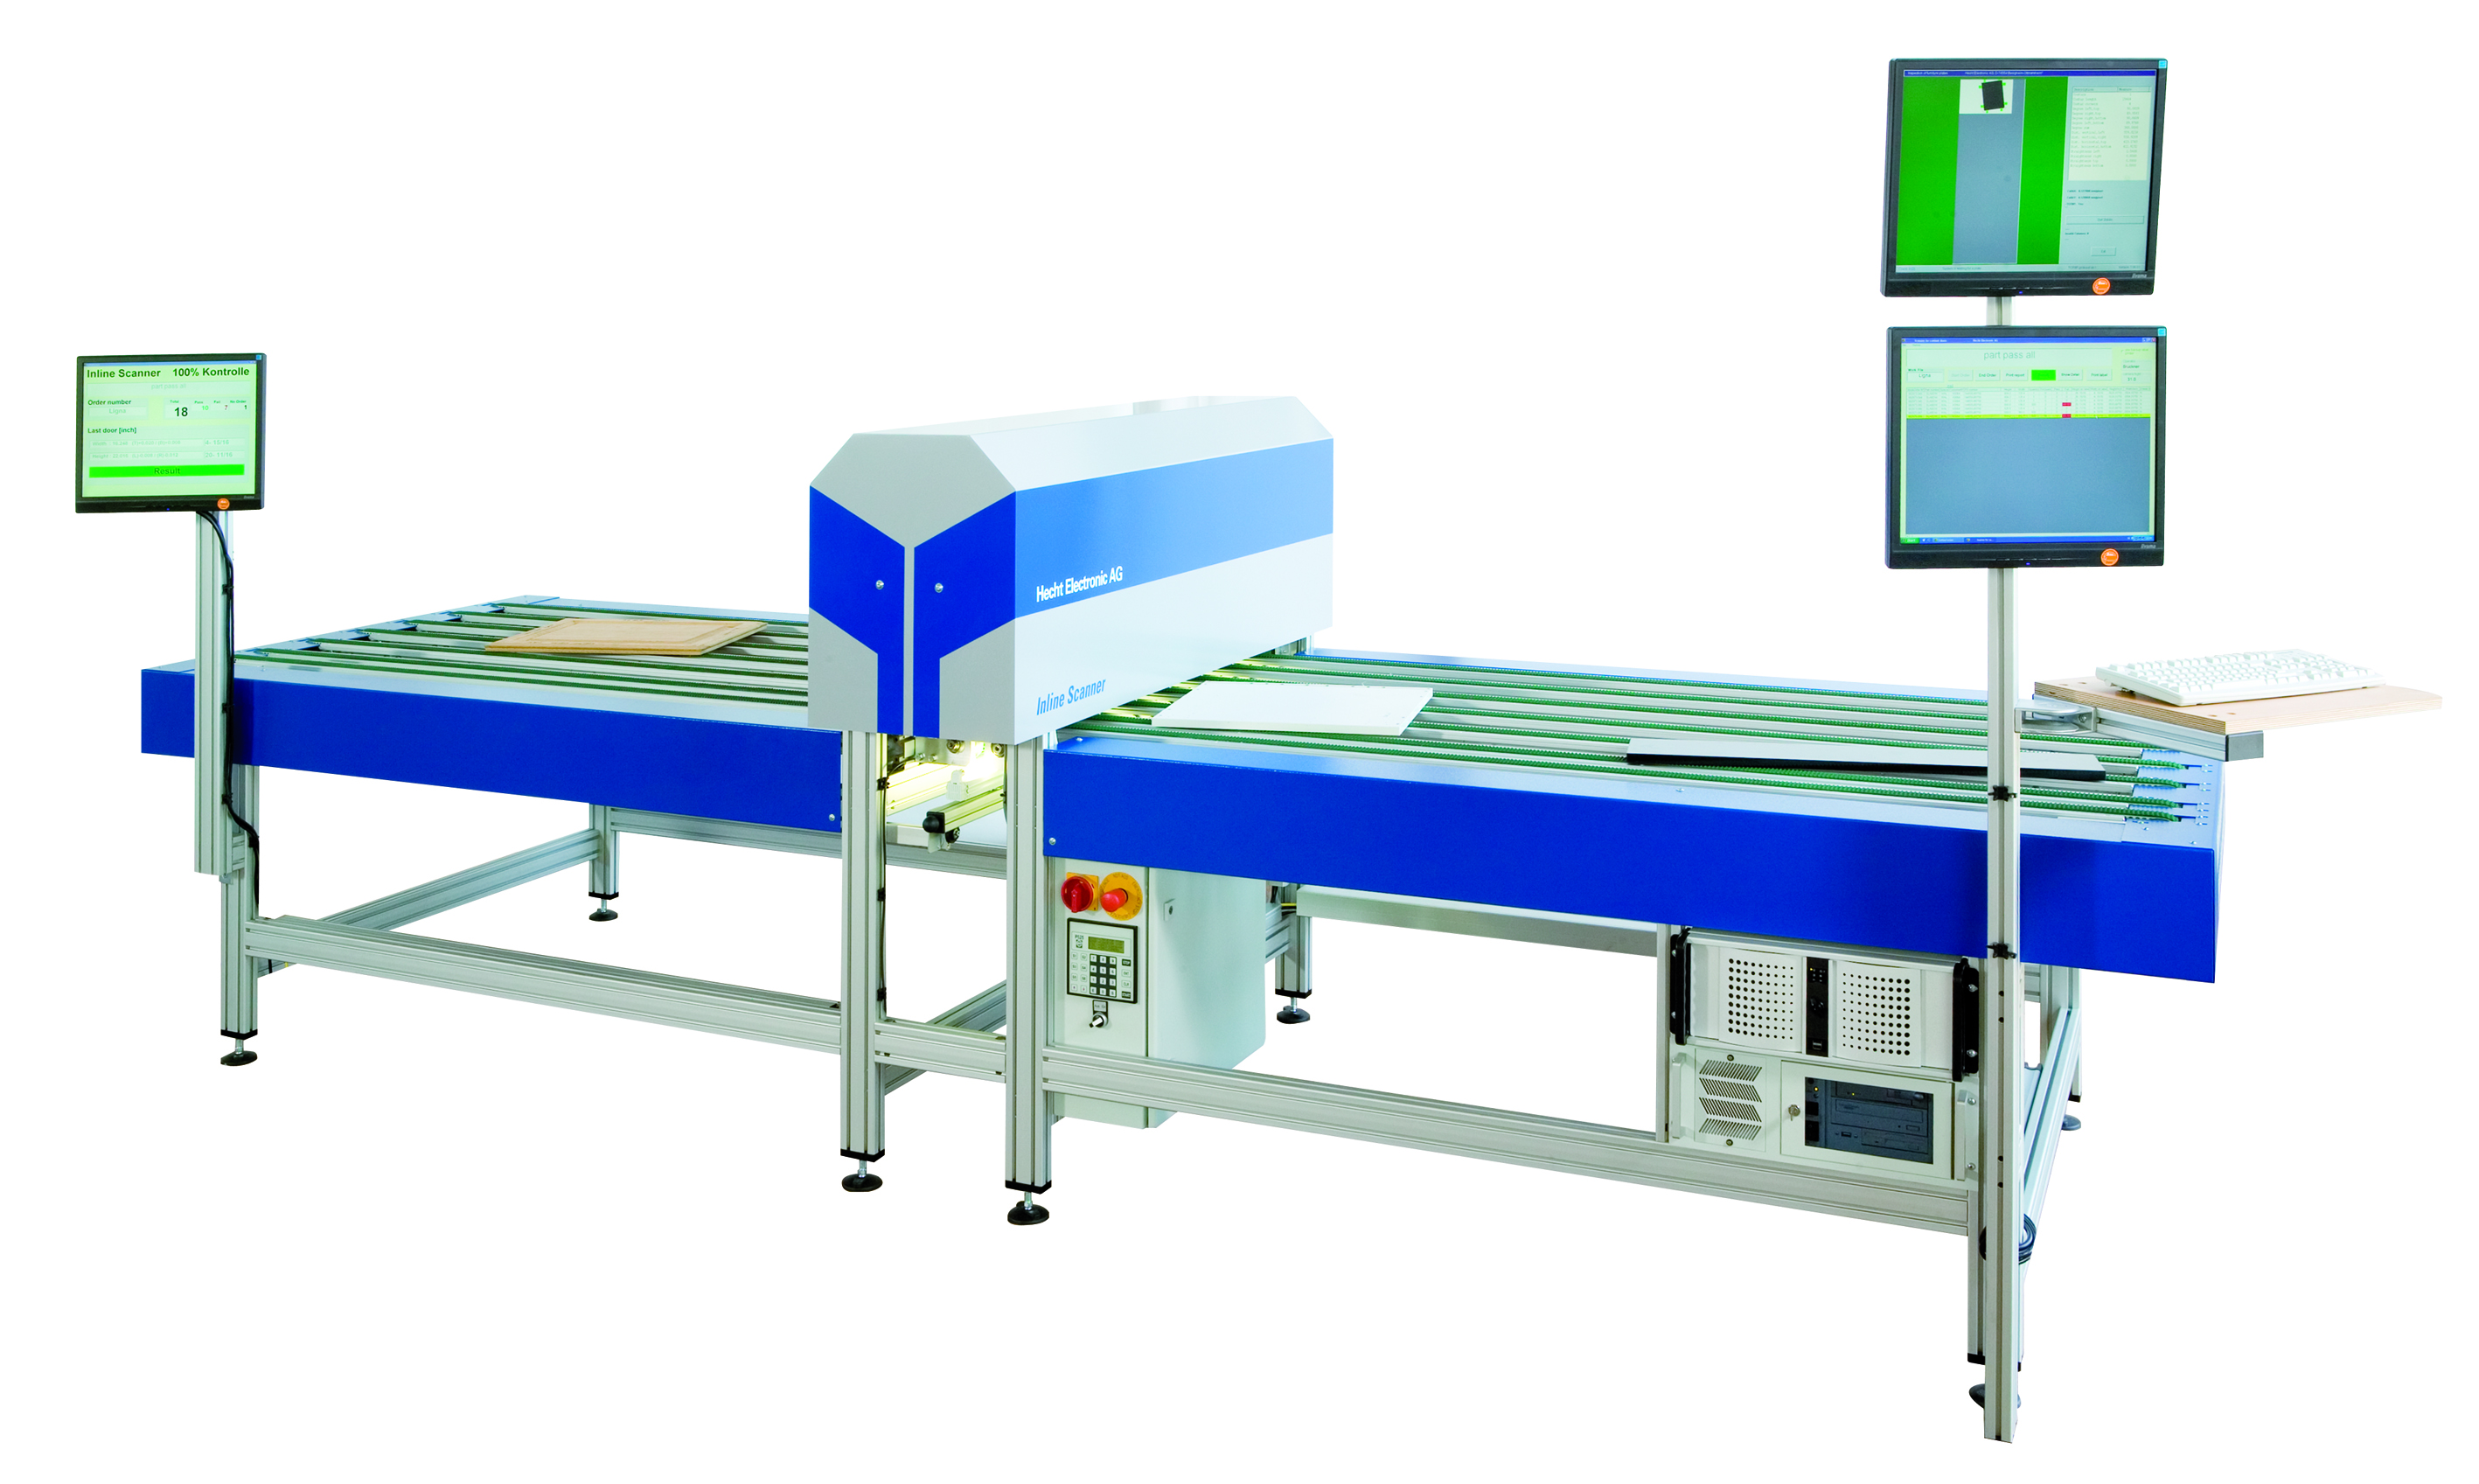 4i Inlinescanner - Continuous measuring system with screens for furniture parts